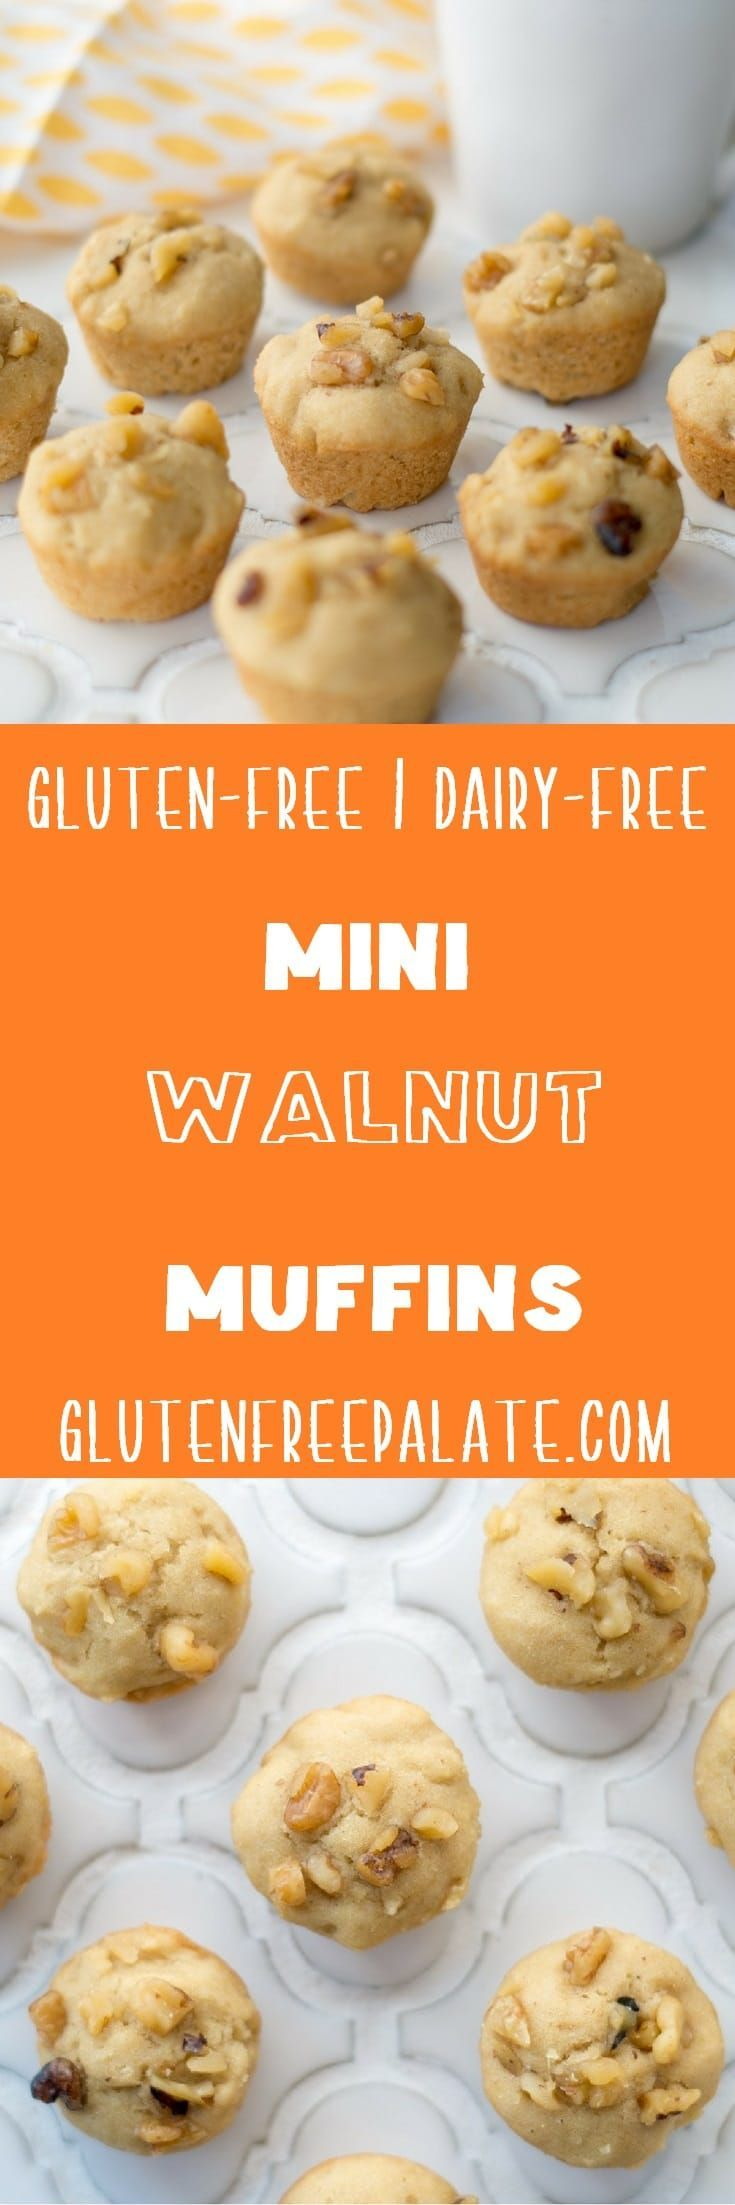 Gluten-Free Mini Walnut Muffins that are also dairy-free and refined sugar free. They are slightly sweet, with a lovely texture and loads of crunchy walnuts. via @gfpalate